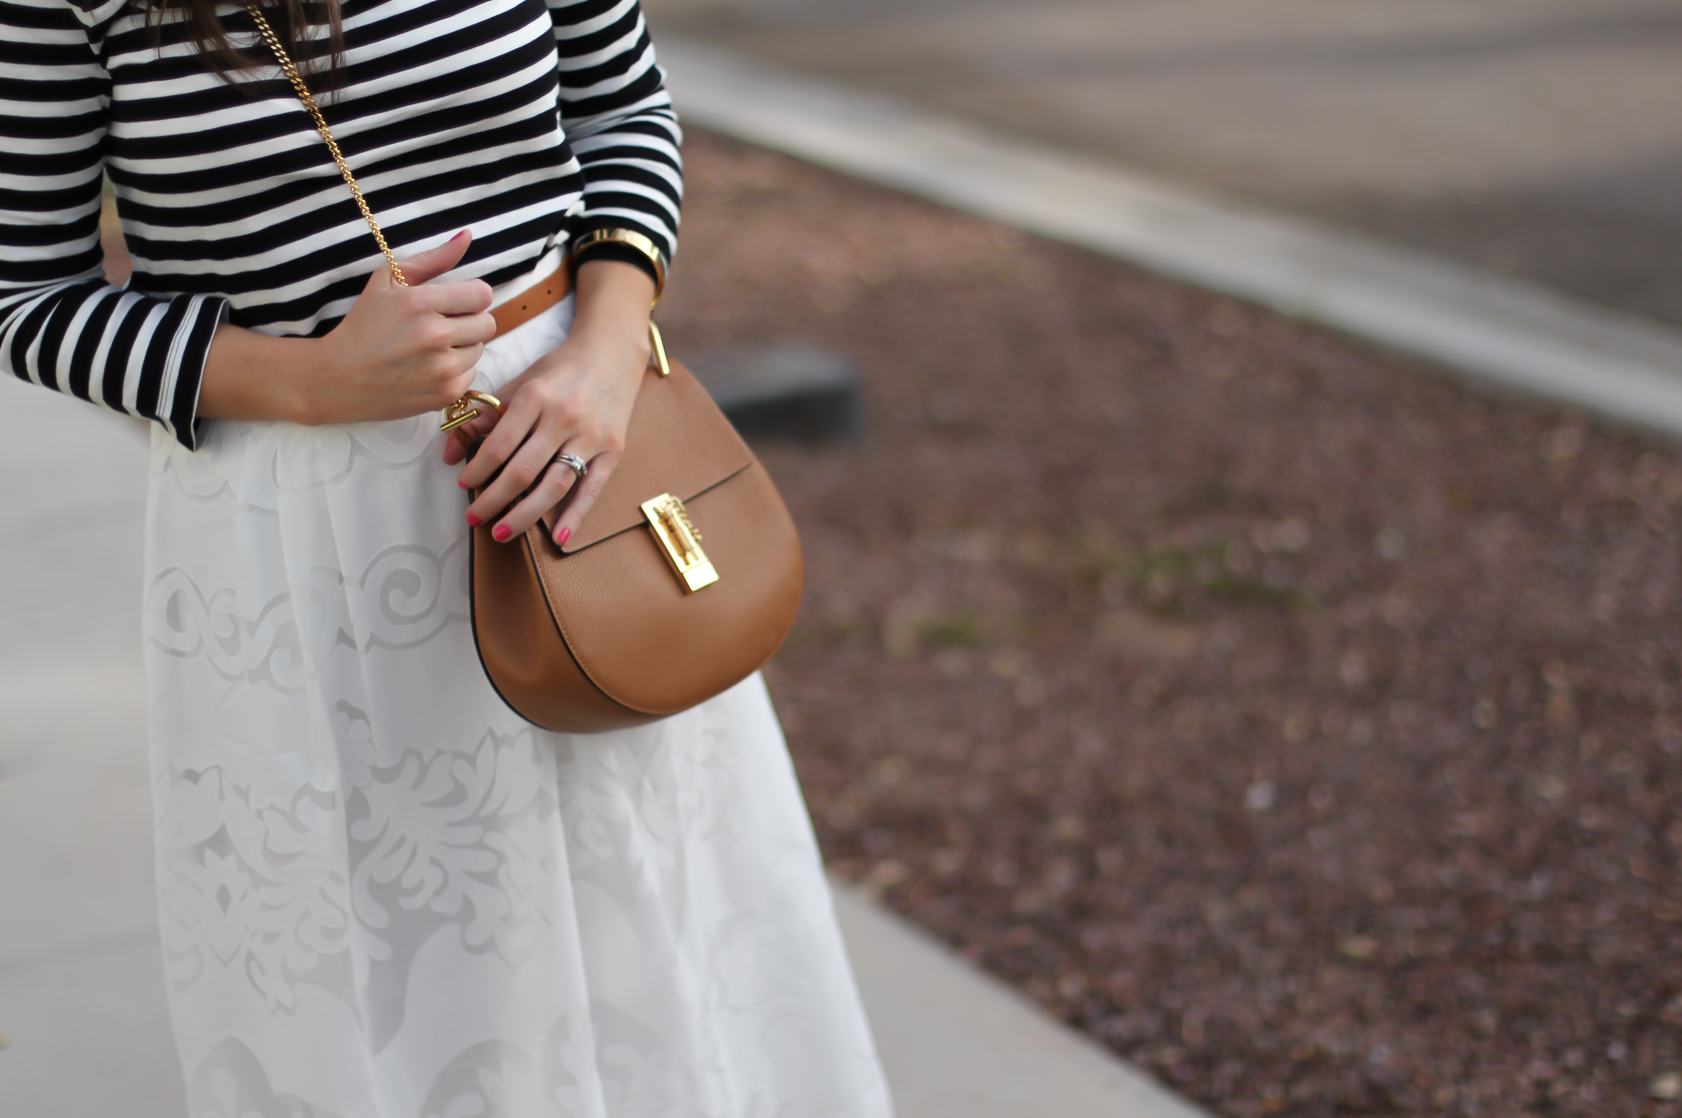 Lace White Midi Skirt, Black and White Striped Tee, Tan Leather Sandals, Tan Chain Strap Crossbody, J.Crew, Joie, Chloe 7